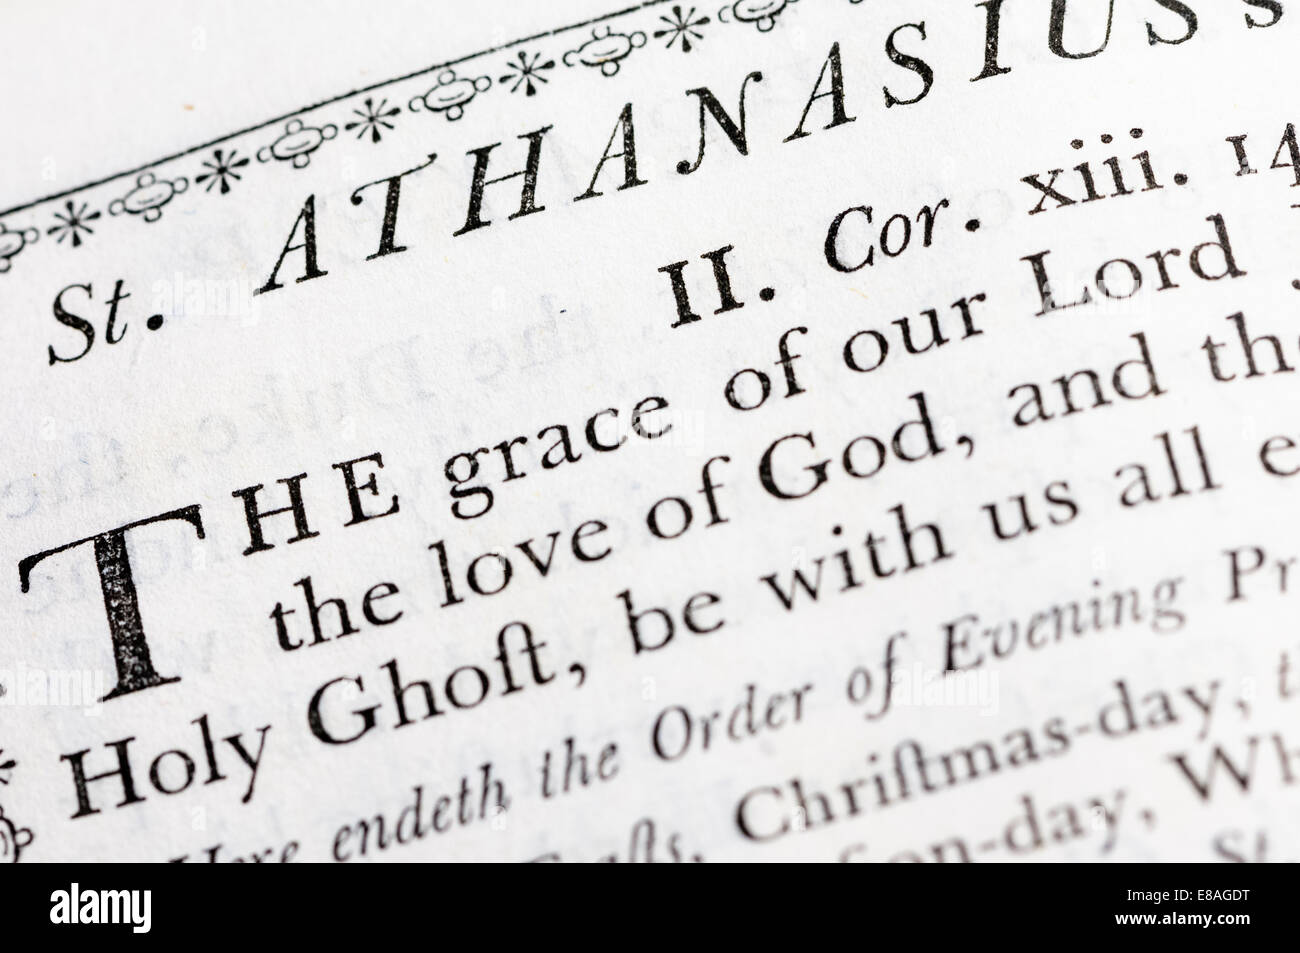 St. Athanasius's Creed in a very old version of the Book of Common Prayer (CofE) - Stock Image